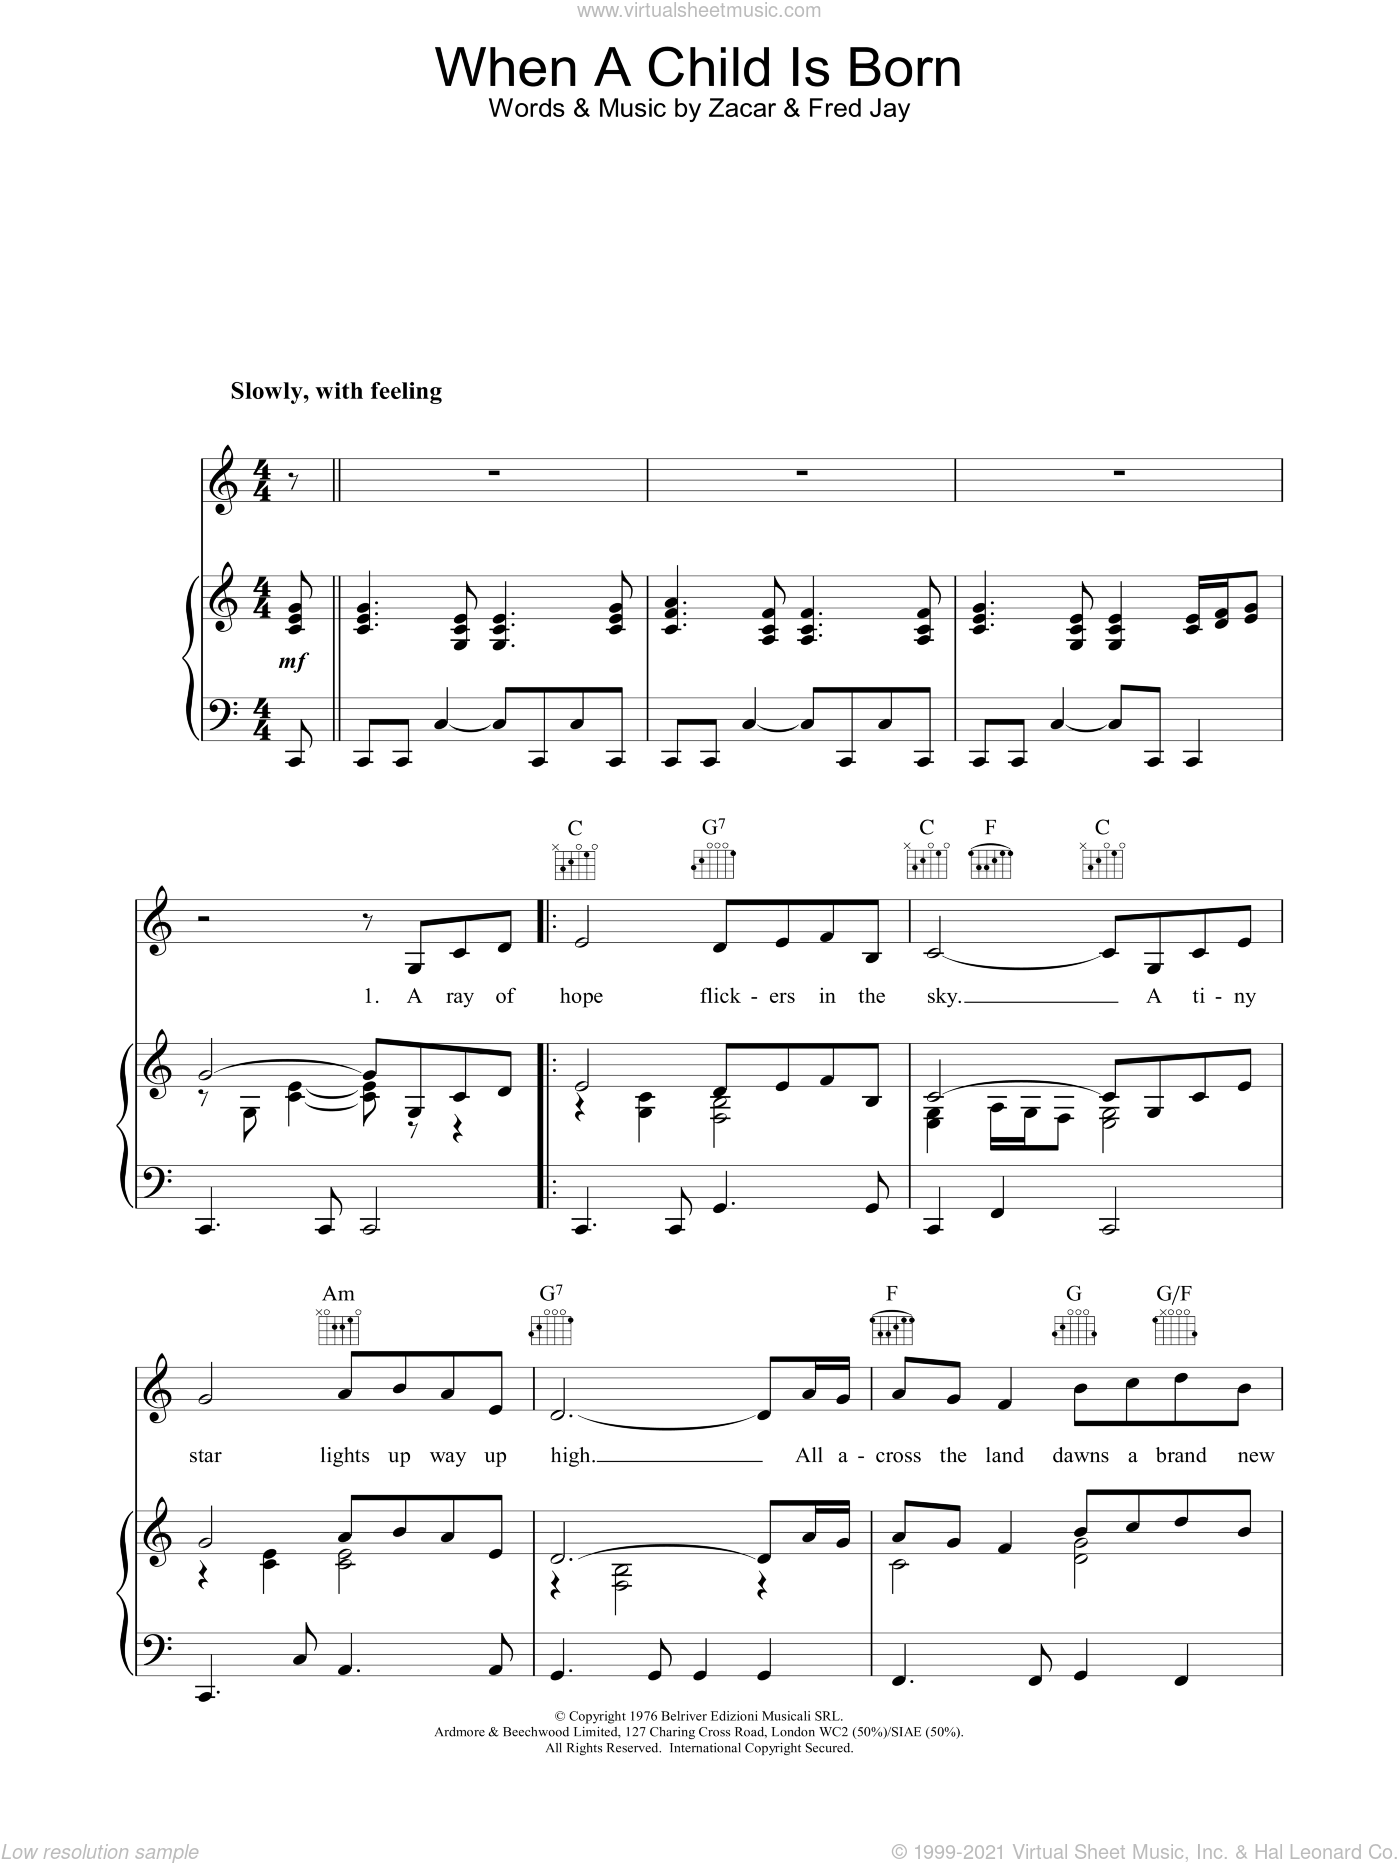 When A Child Is Born sheet music for voice, piano or guitar by Johnny Mathis, Brook Benton, Kenny Rogers, Fred Jay and Zacar, intermediate skill level